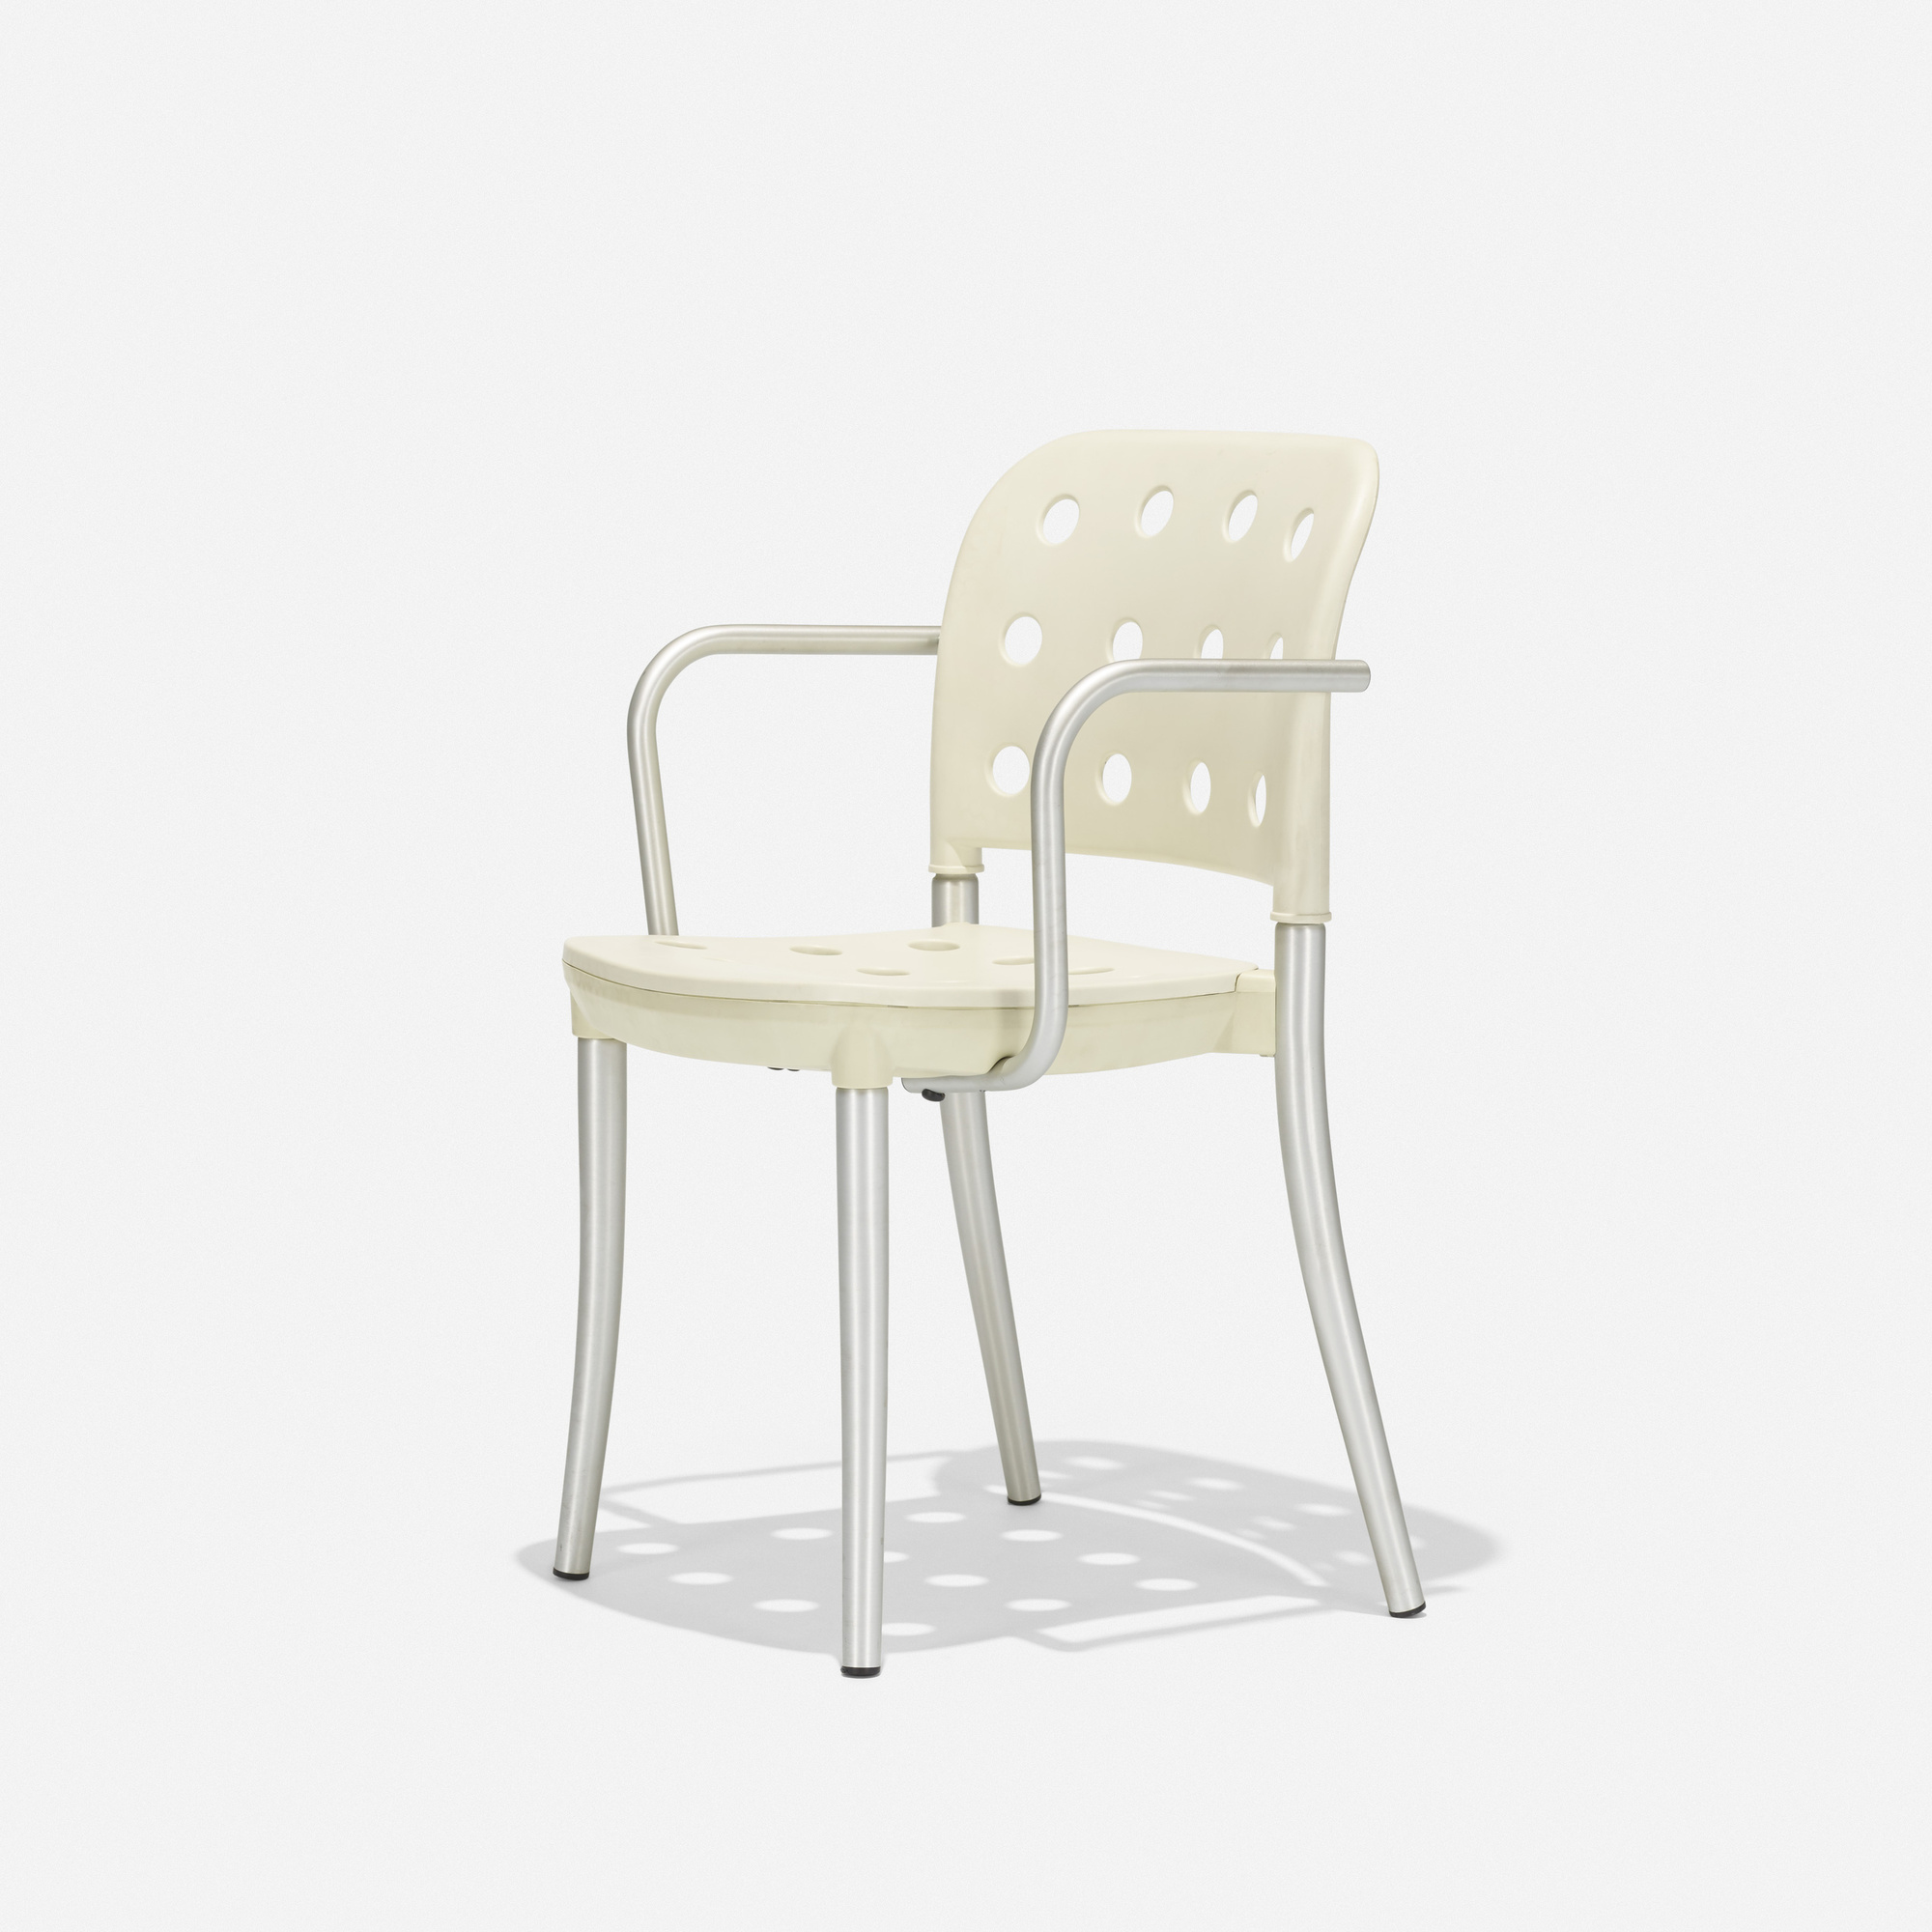 213: Antonio Citterio / Minni A1 chair (1 of 3)